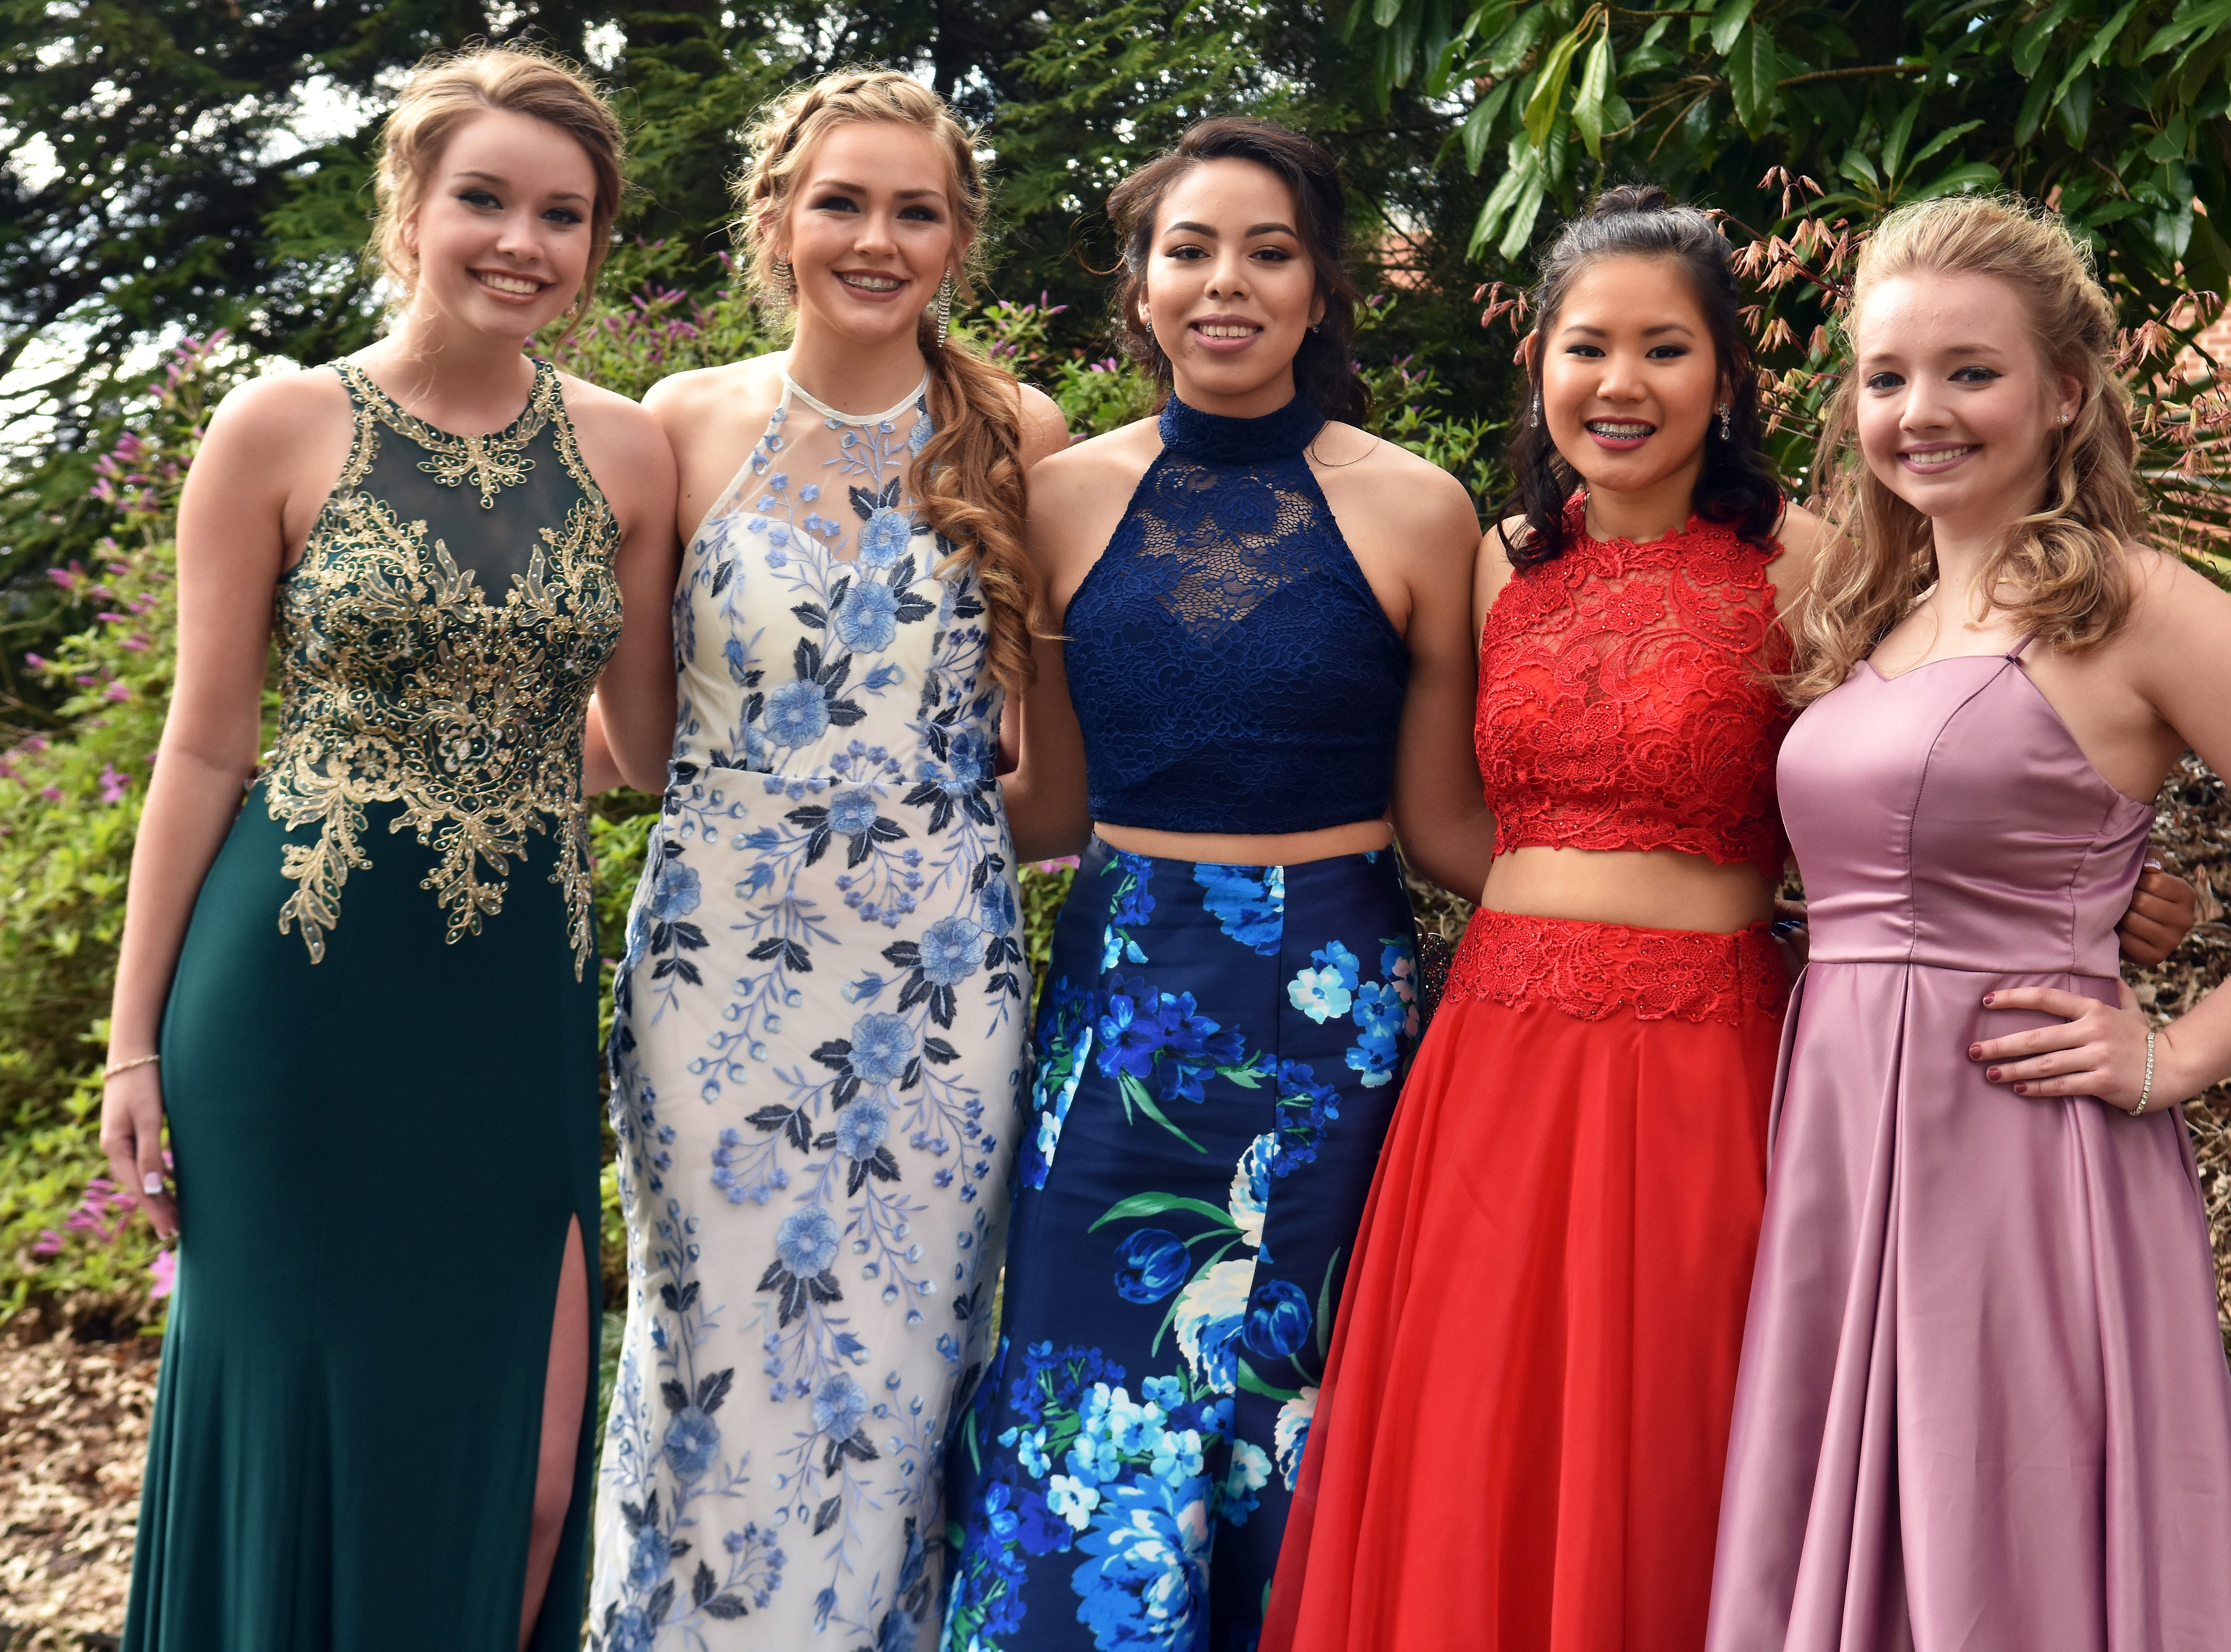 Scenes from Gibbs High School's prom held at The Mill & Mine in Knoxville, Tennessee on Friday, April 5, 2019.